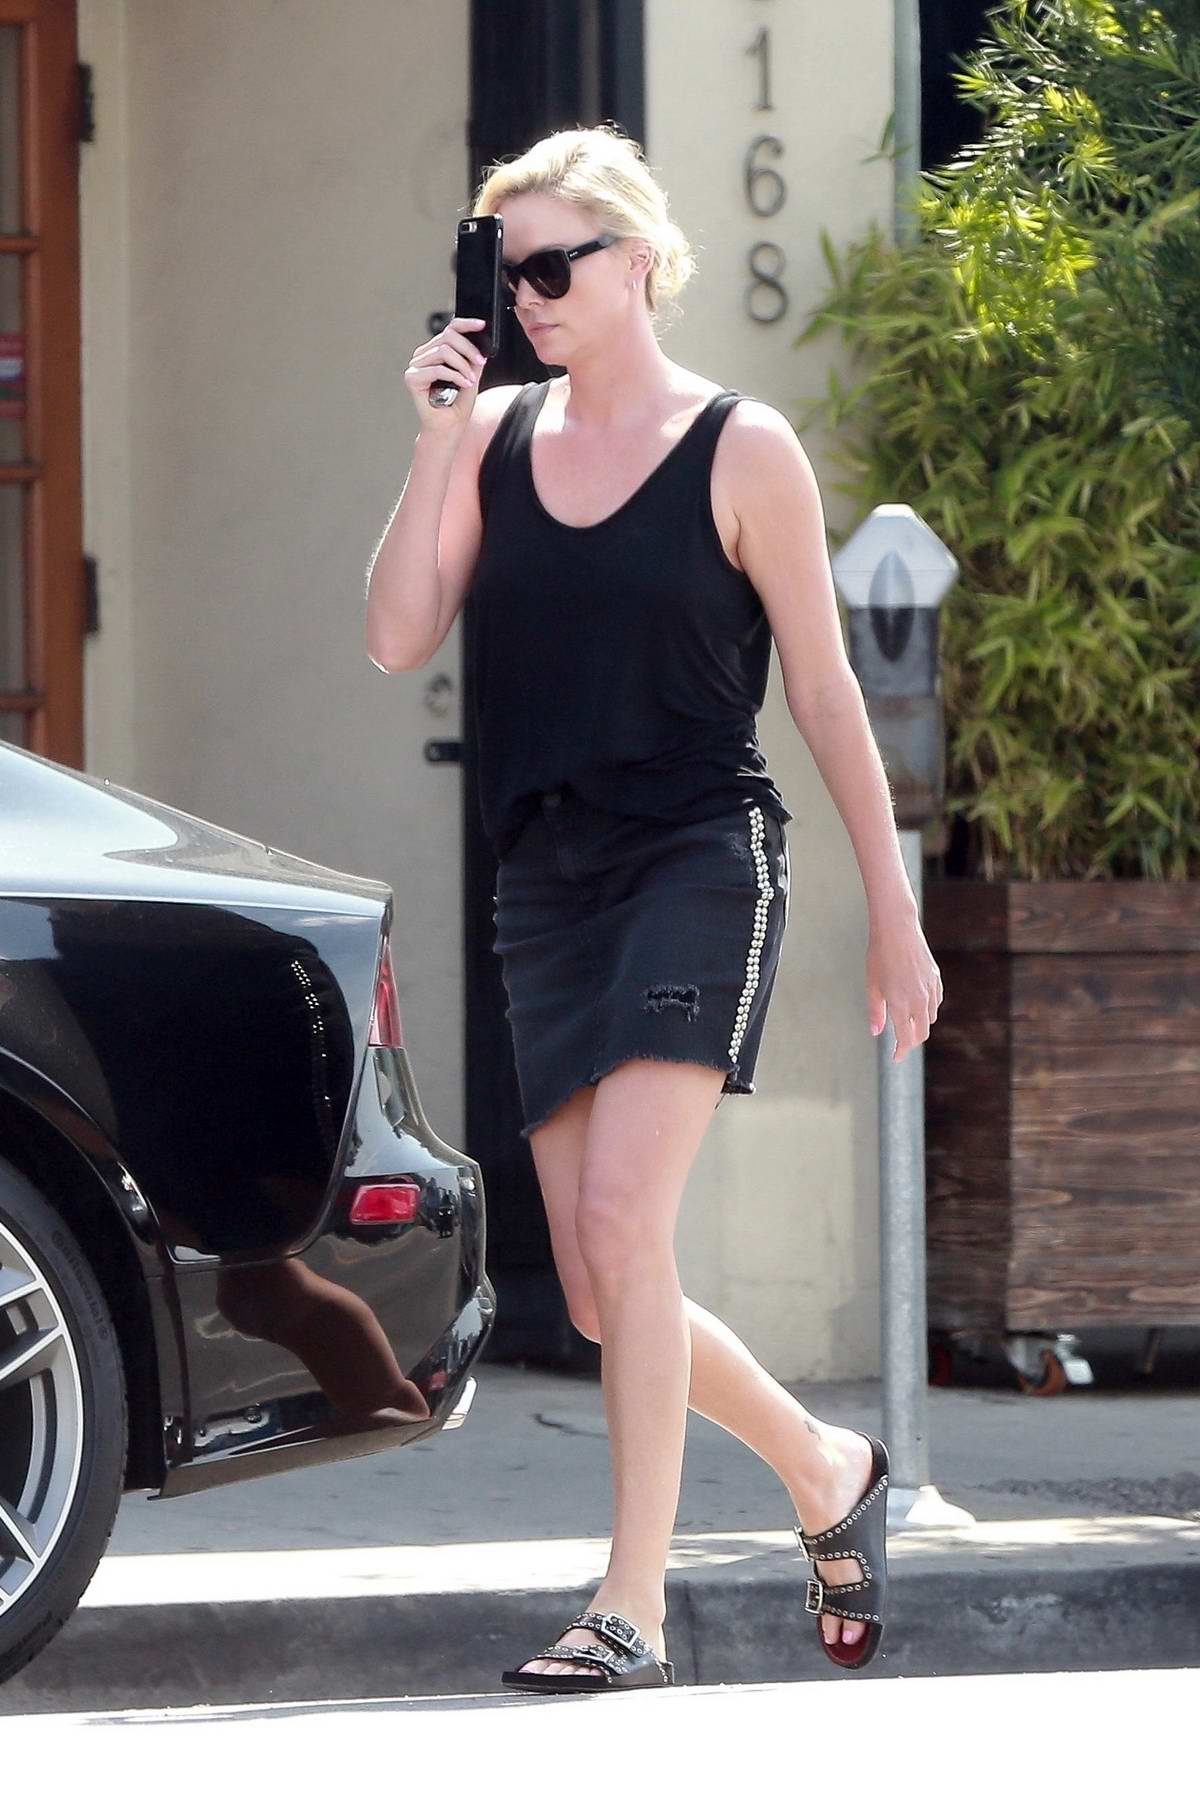 Charlize Theron dons a black crop top with matching denim skirt while shopping in West Hollywood, Los Angeles